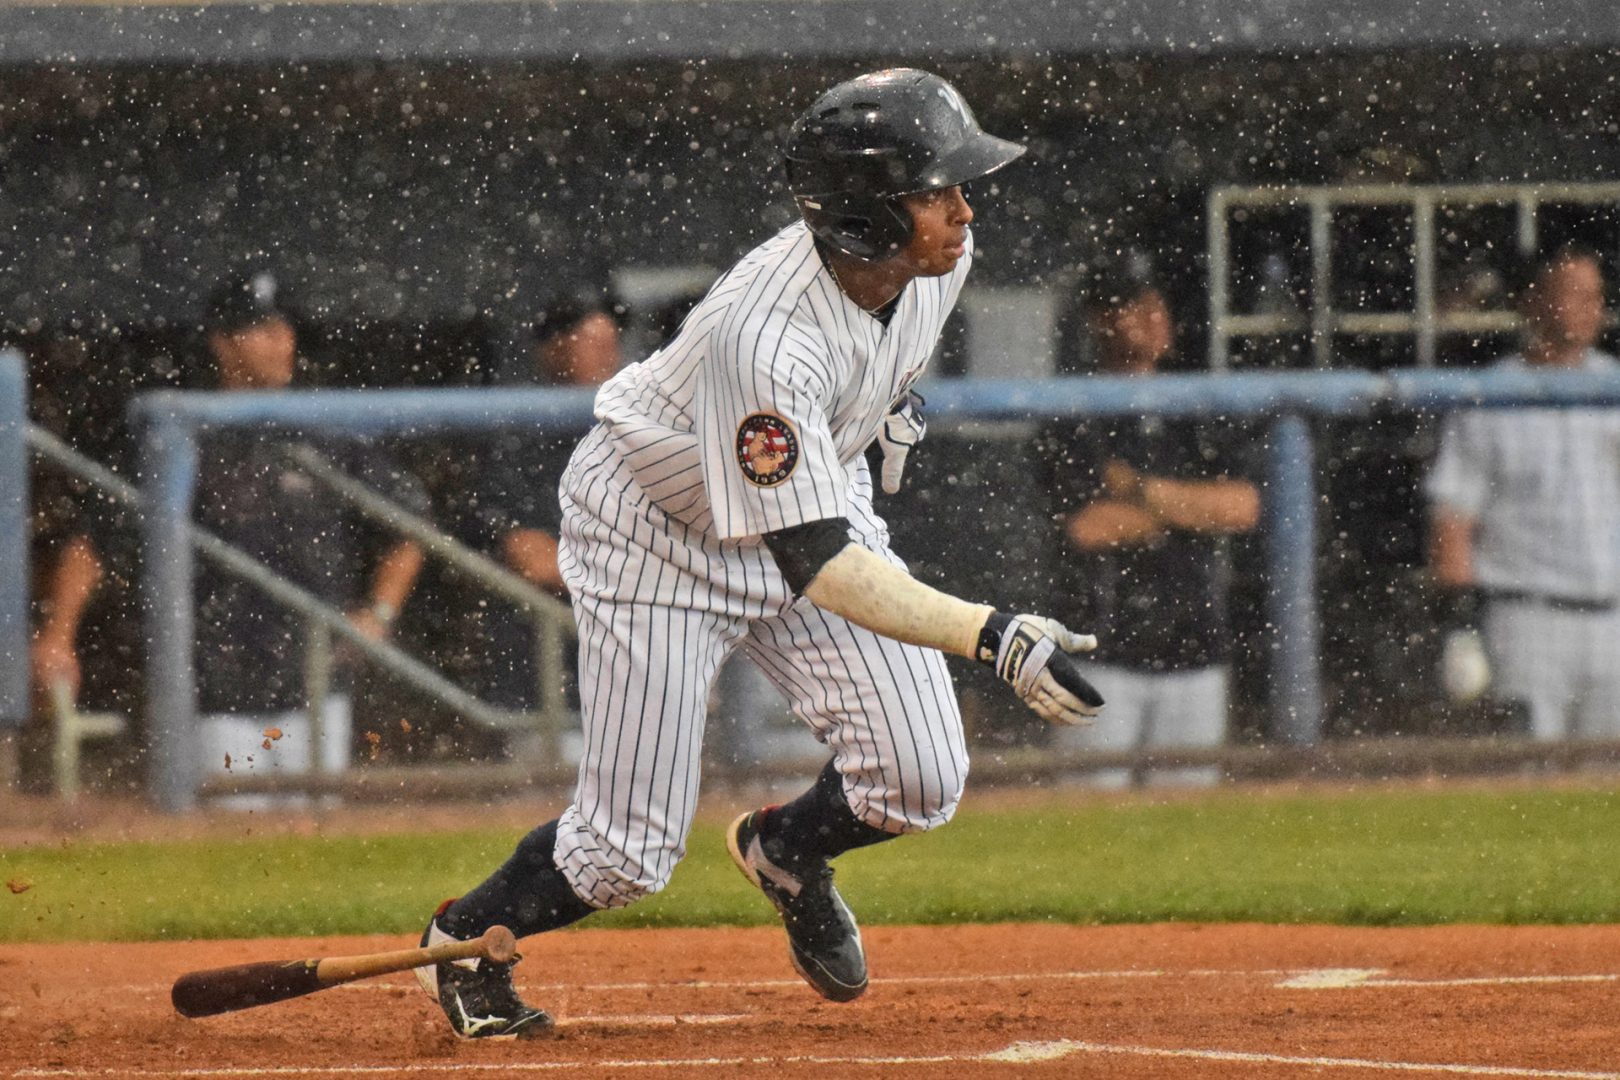 During the middle of the first inning the rain started to come down, only Ricardo Ferriera got up to bat in the bottom half with the rain pouring down. (Robert M. Pimpsner)